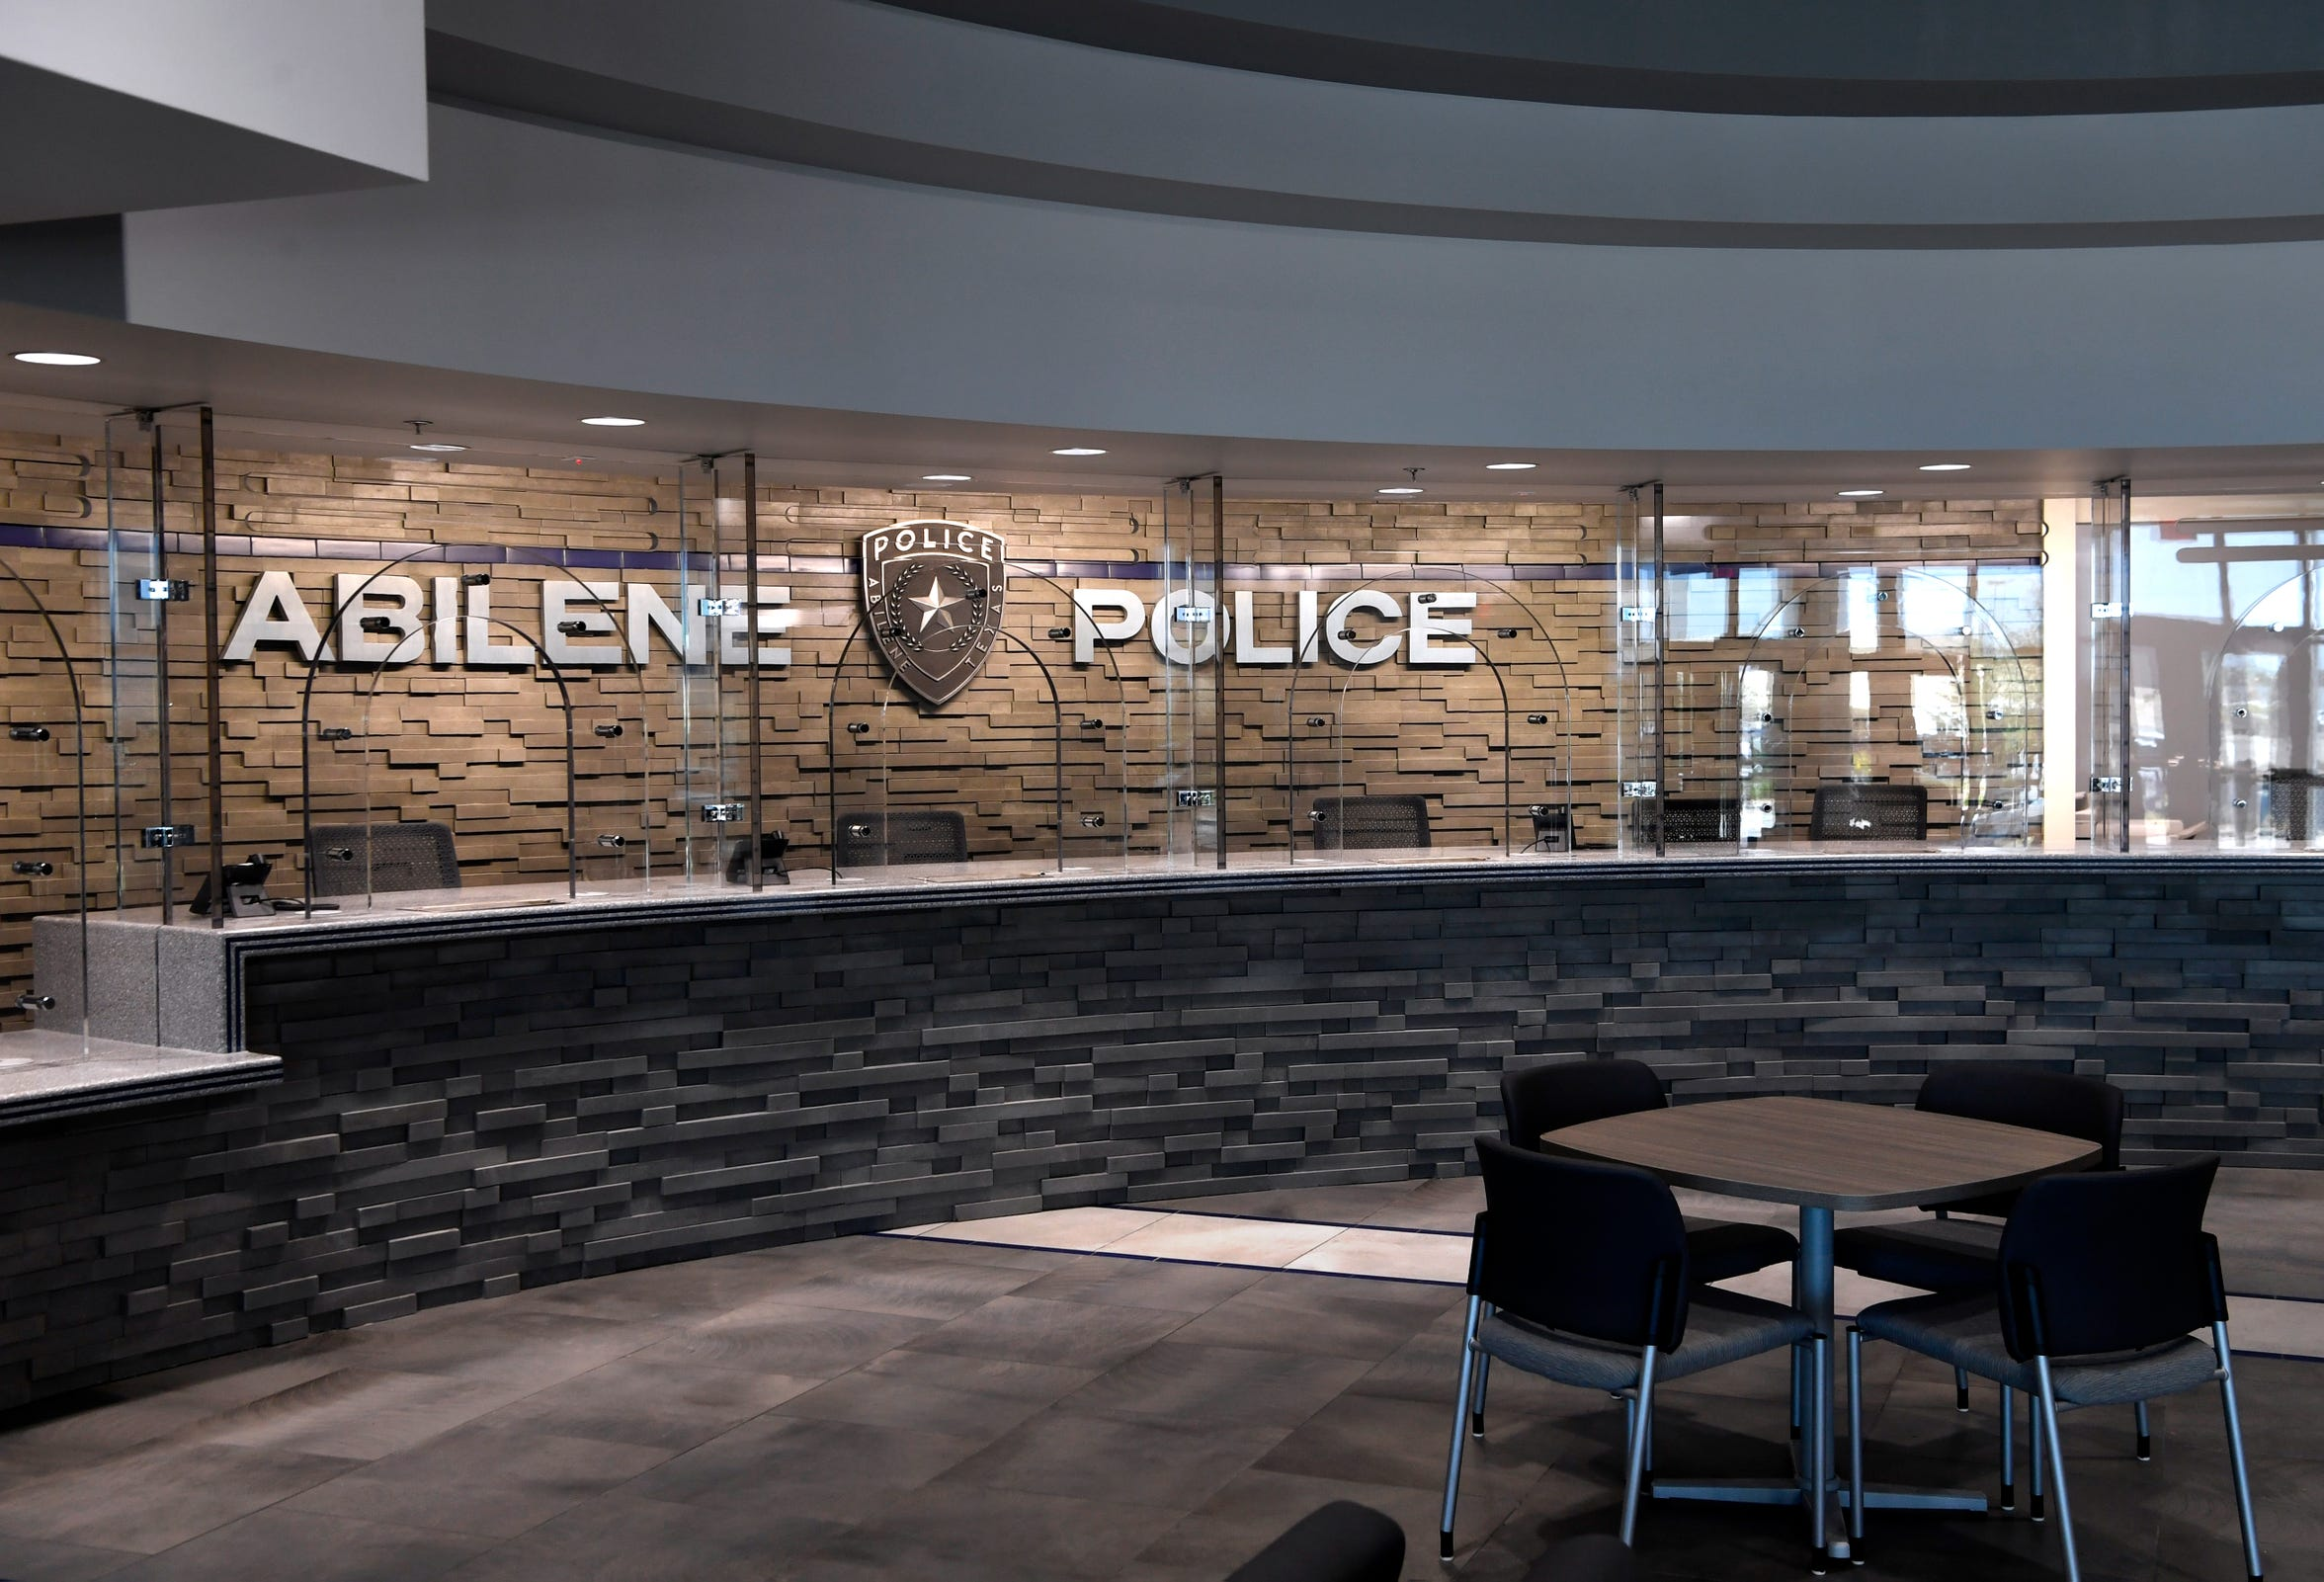 The counter at the new Law Enforcement Center, located at the former Kmart on South First Street.